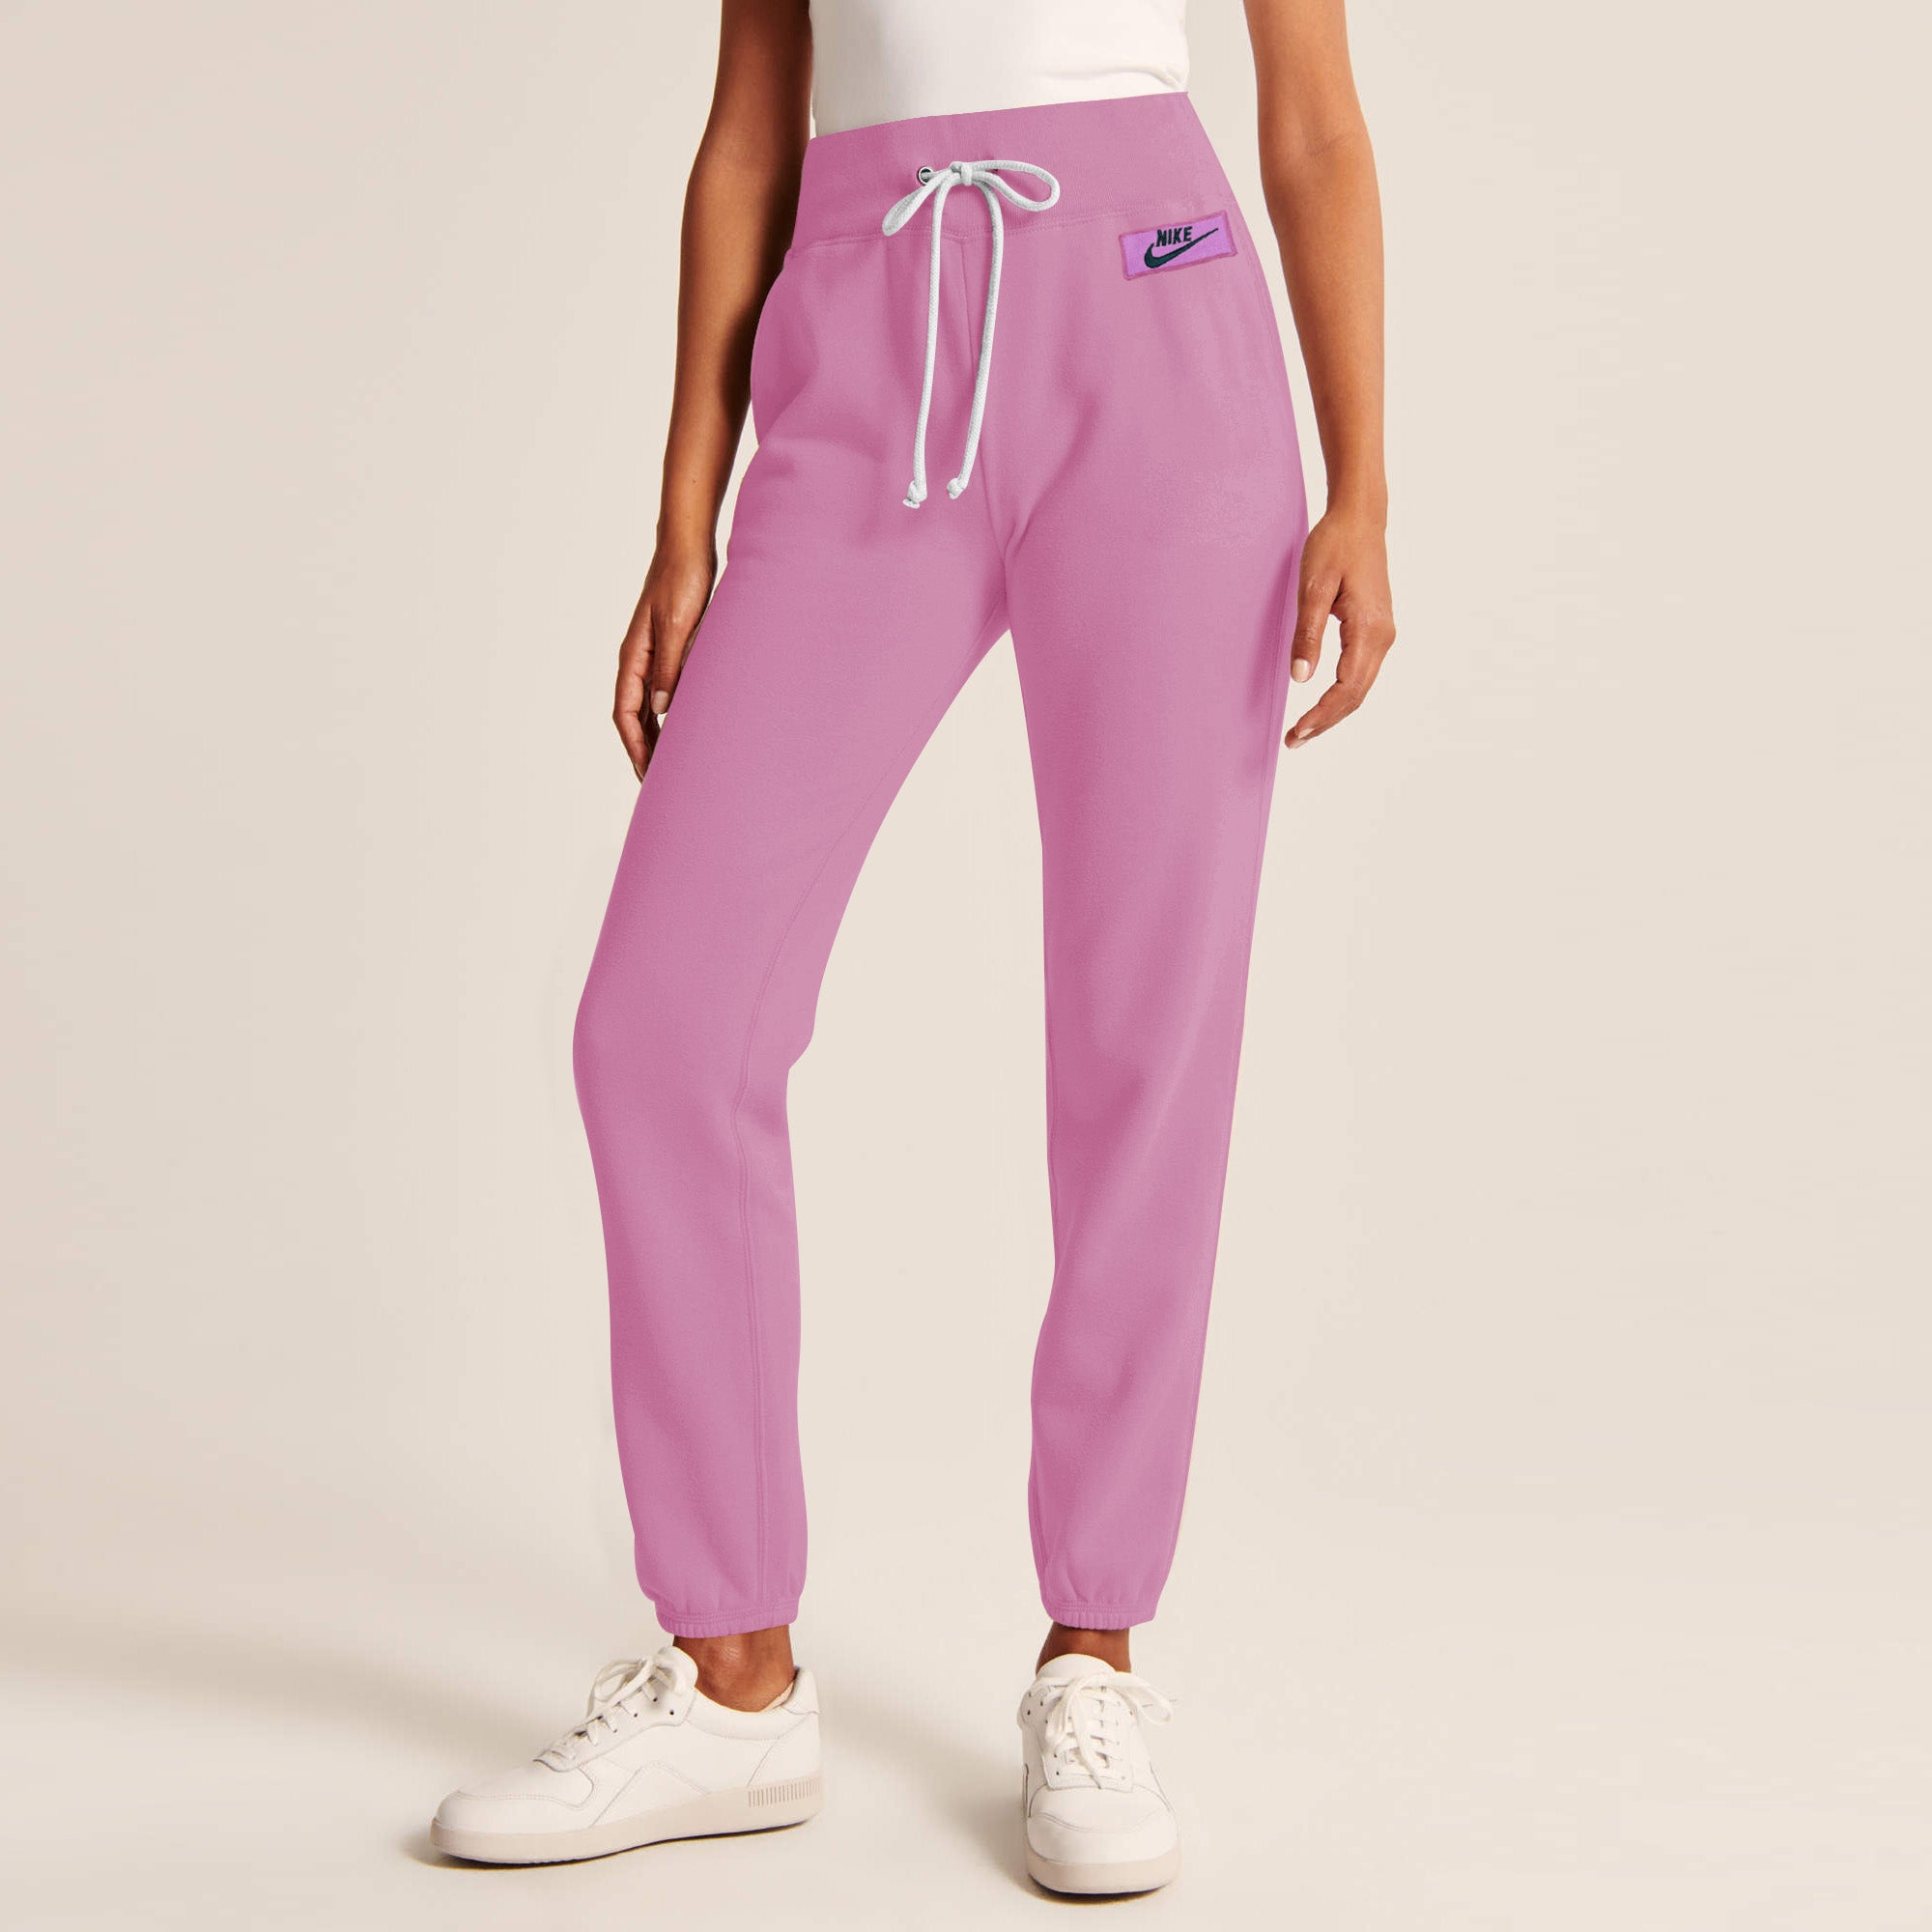 NK Fleece Slim Fit Jogger Trouser For Ladies-Light Pink With Navy Embroidery-AN1970